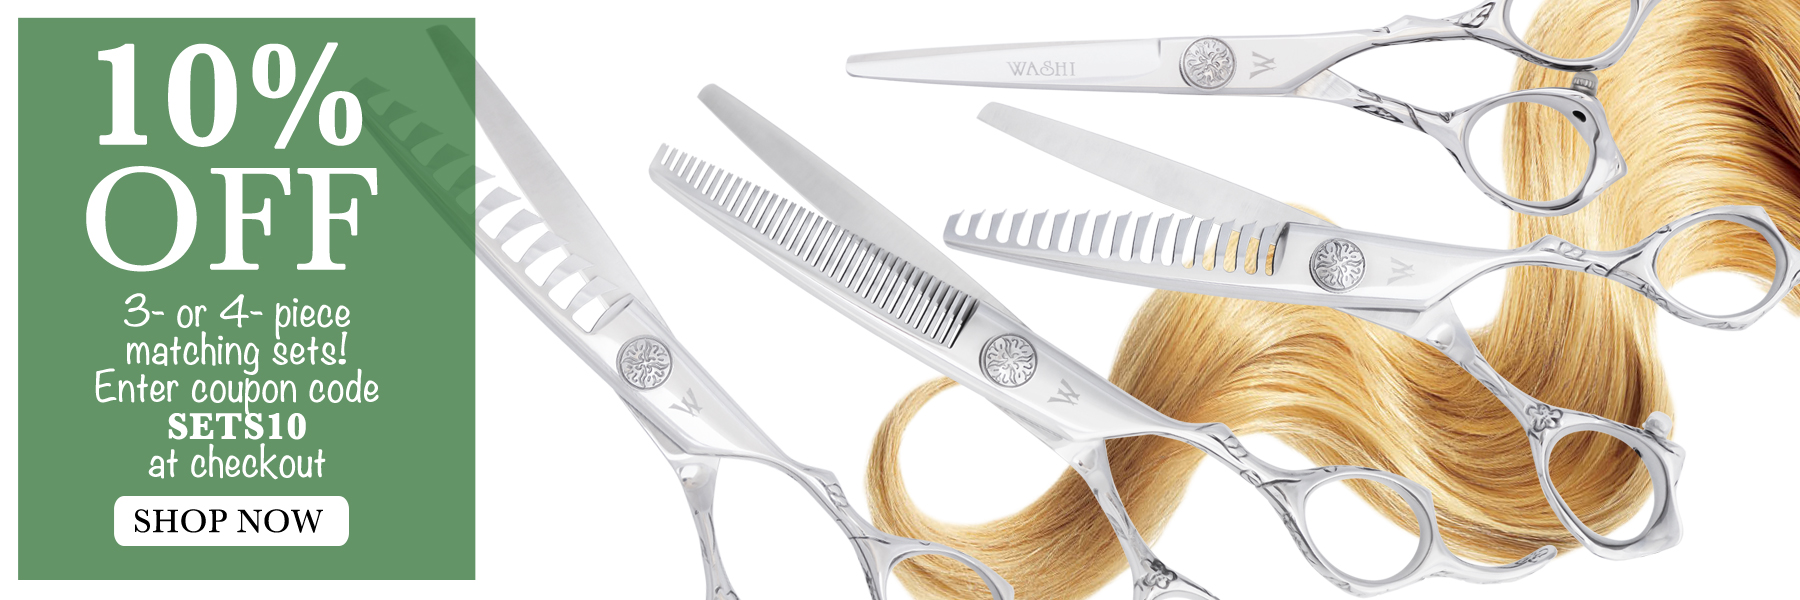 10% off matching hair cutting shear sets